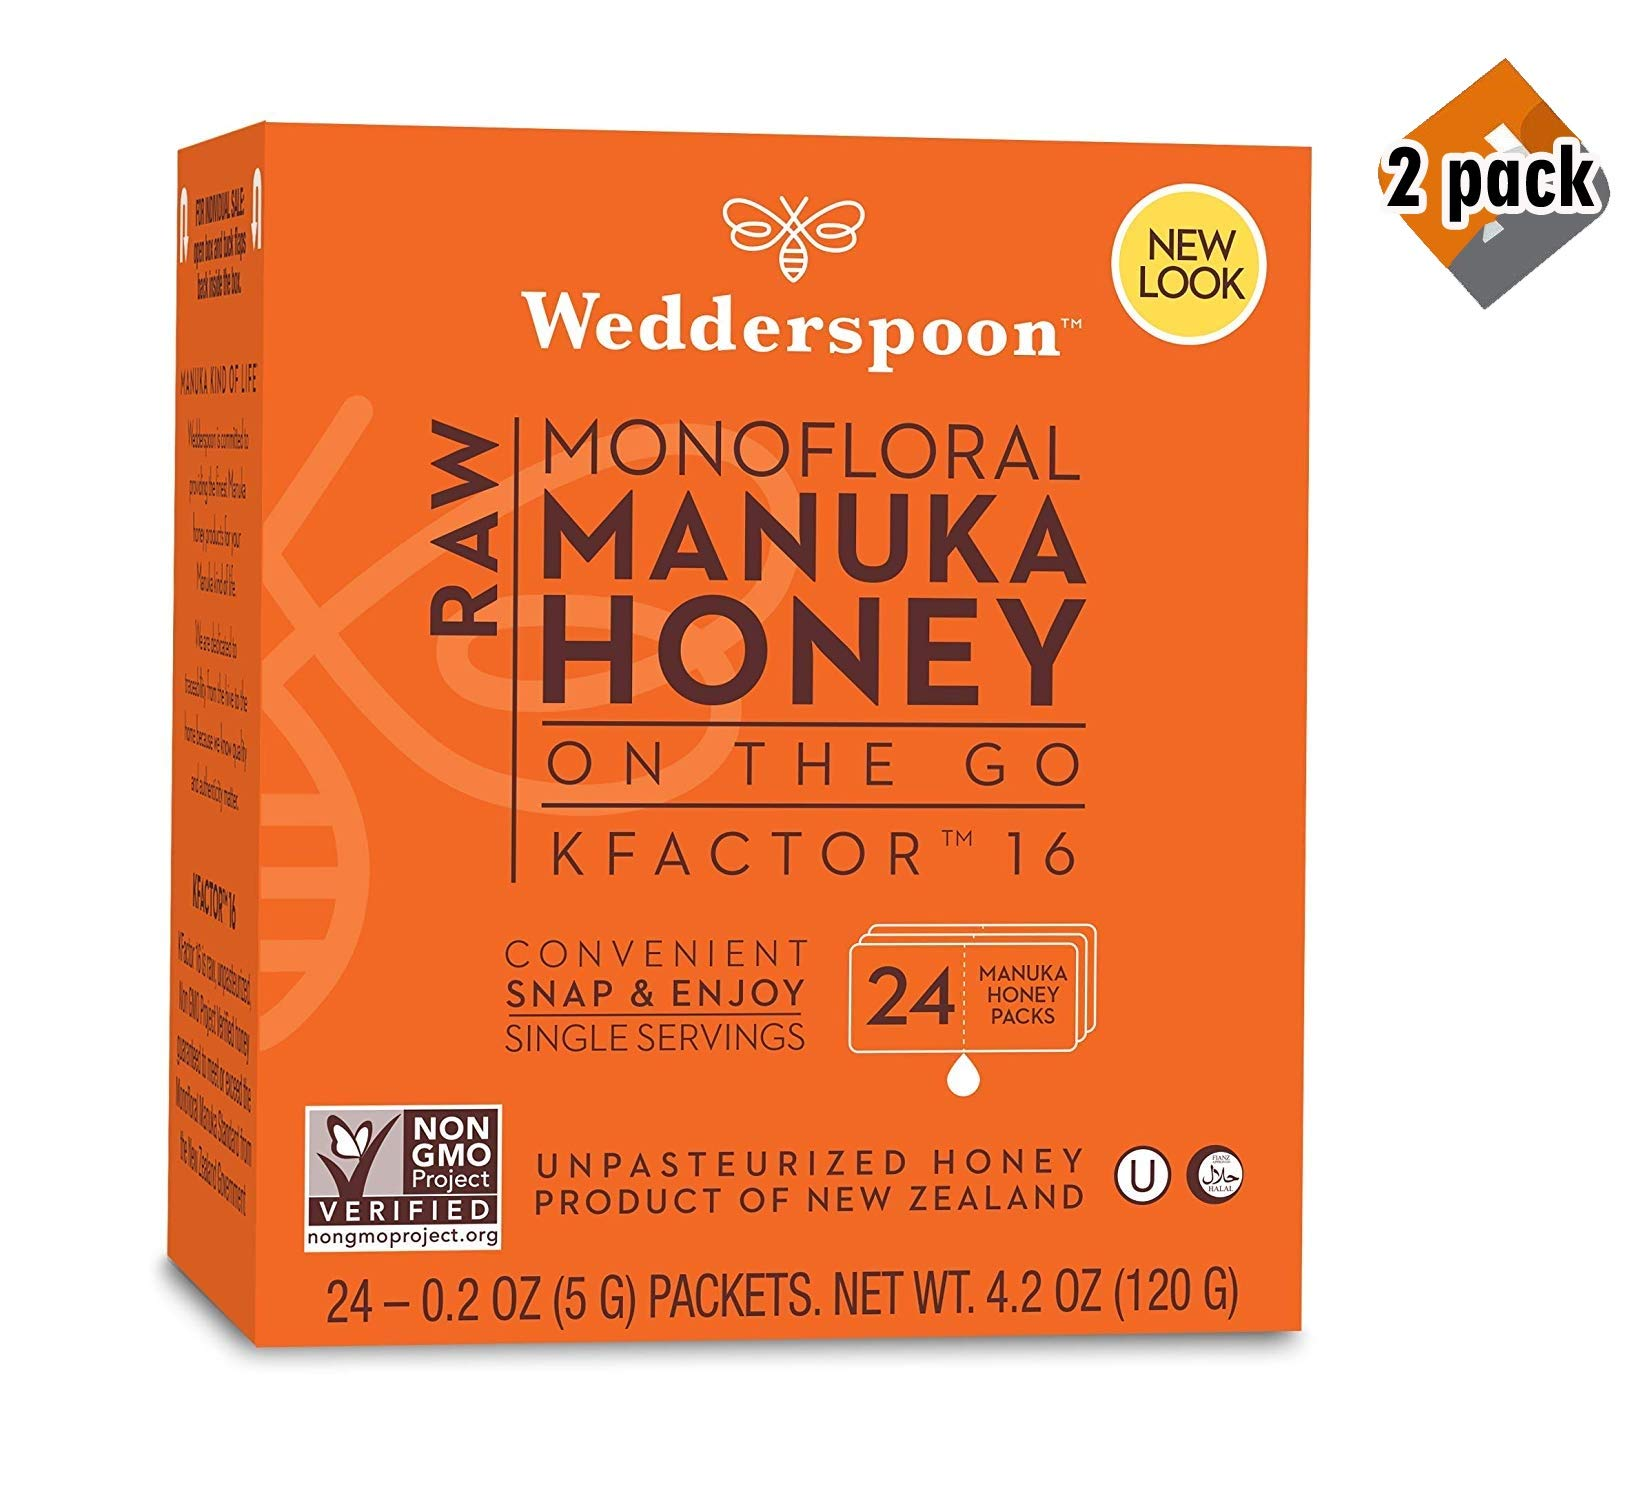 Wedderspoon On The Go Raw Premium Manuka Honey KFactor 16 Packets, 4.0 Oz (24 Count), Unpasteurized, Genuine New Zealand Honey, Multi-Functional, Non-GMO Superfood, 2 Pack